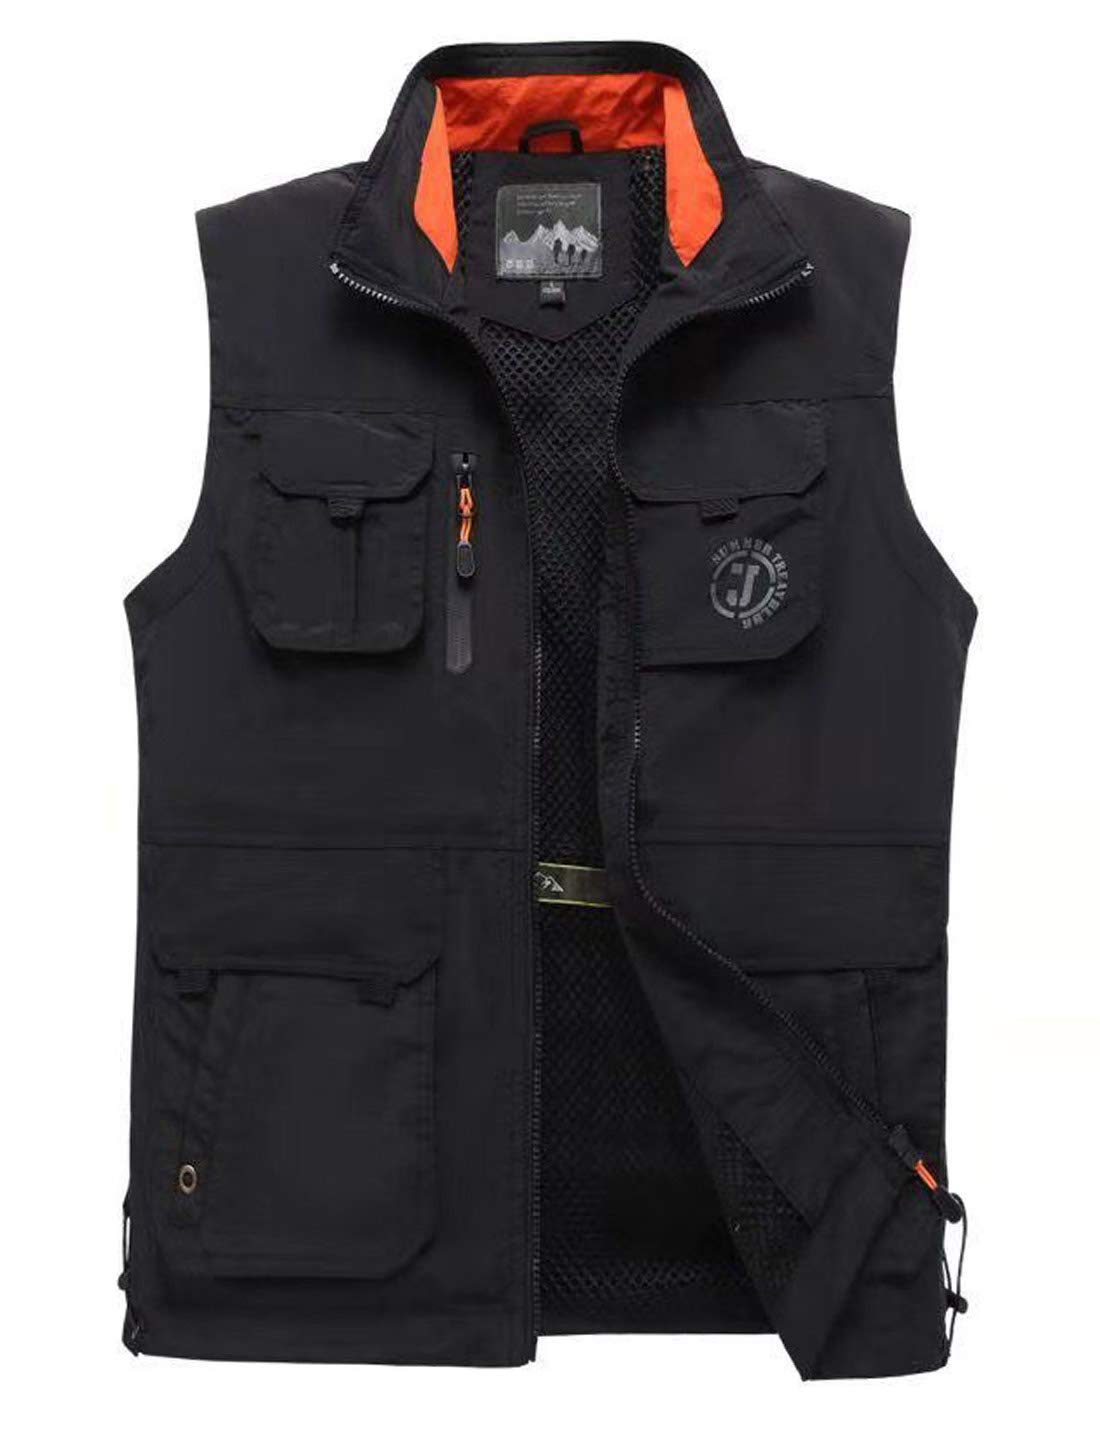 Gihuo Men's Lightweight Quick Dry Outdoor Multi Pockets Fishing Vest (Small, Style2-Black) by Gihuo